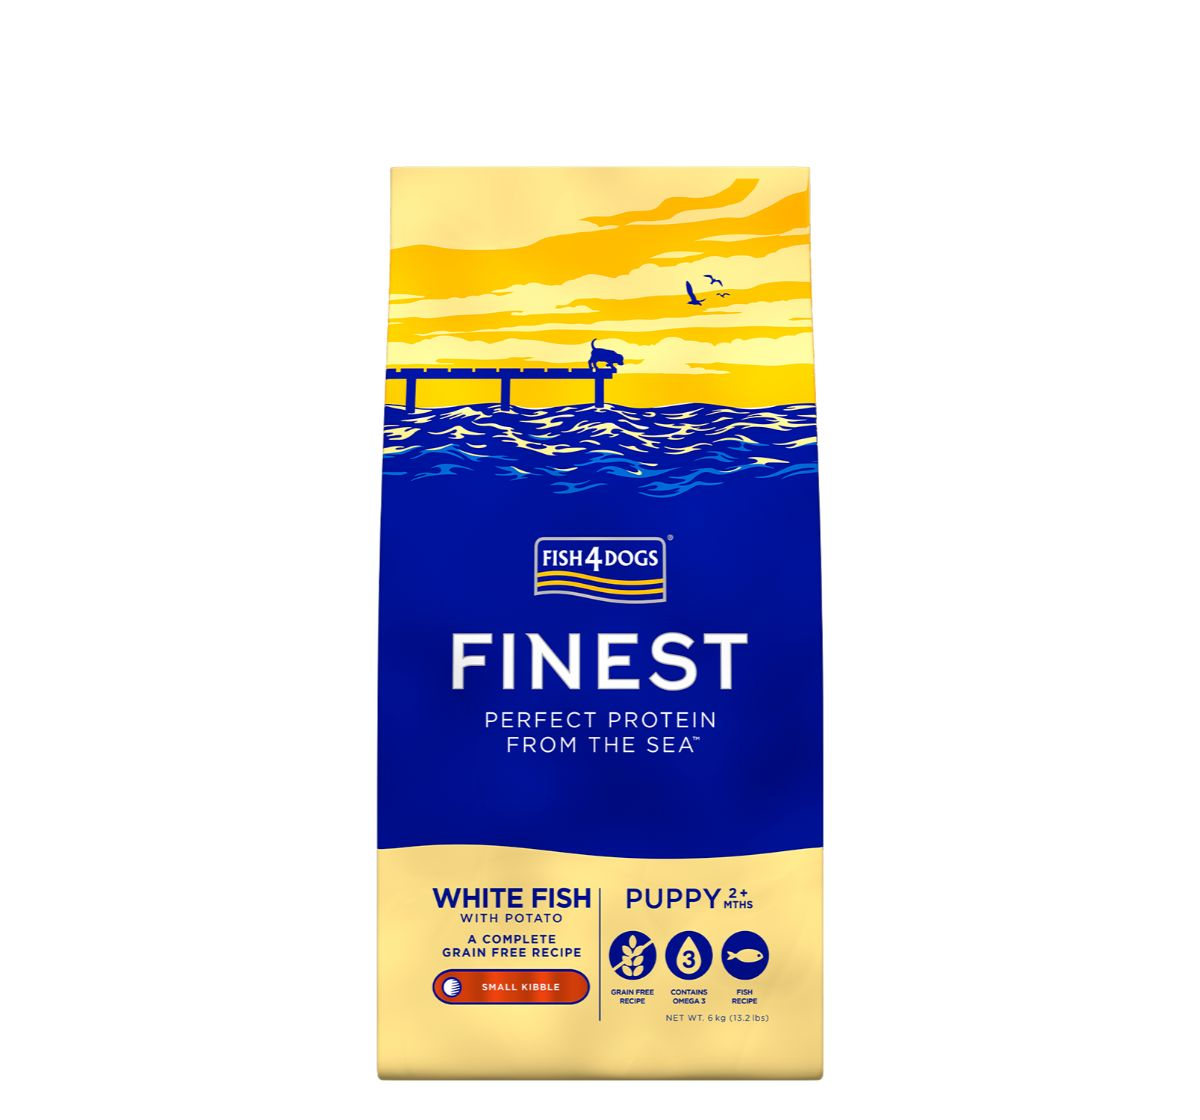 Fish4Dogs Finest Ocean White Fish Puppy Food - 6 Kg